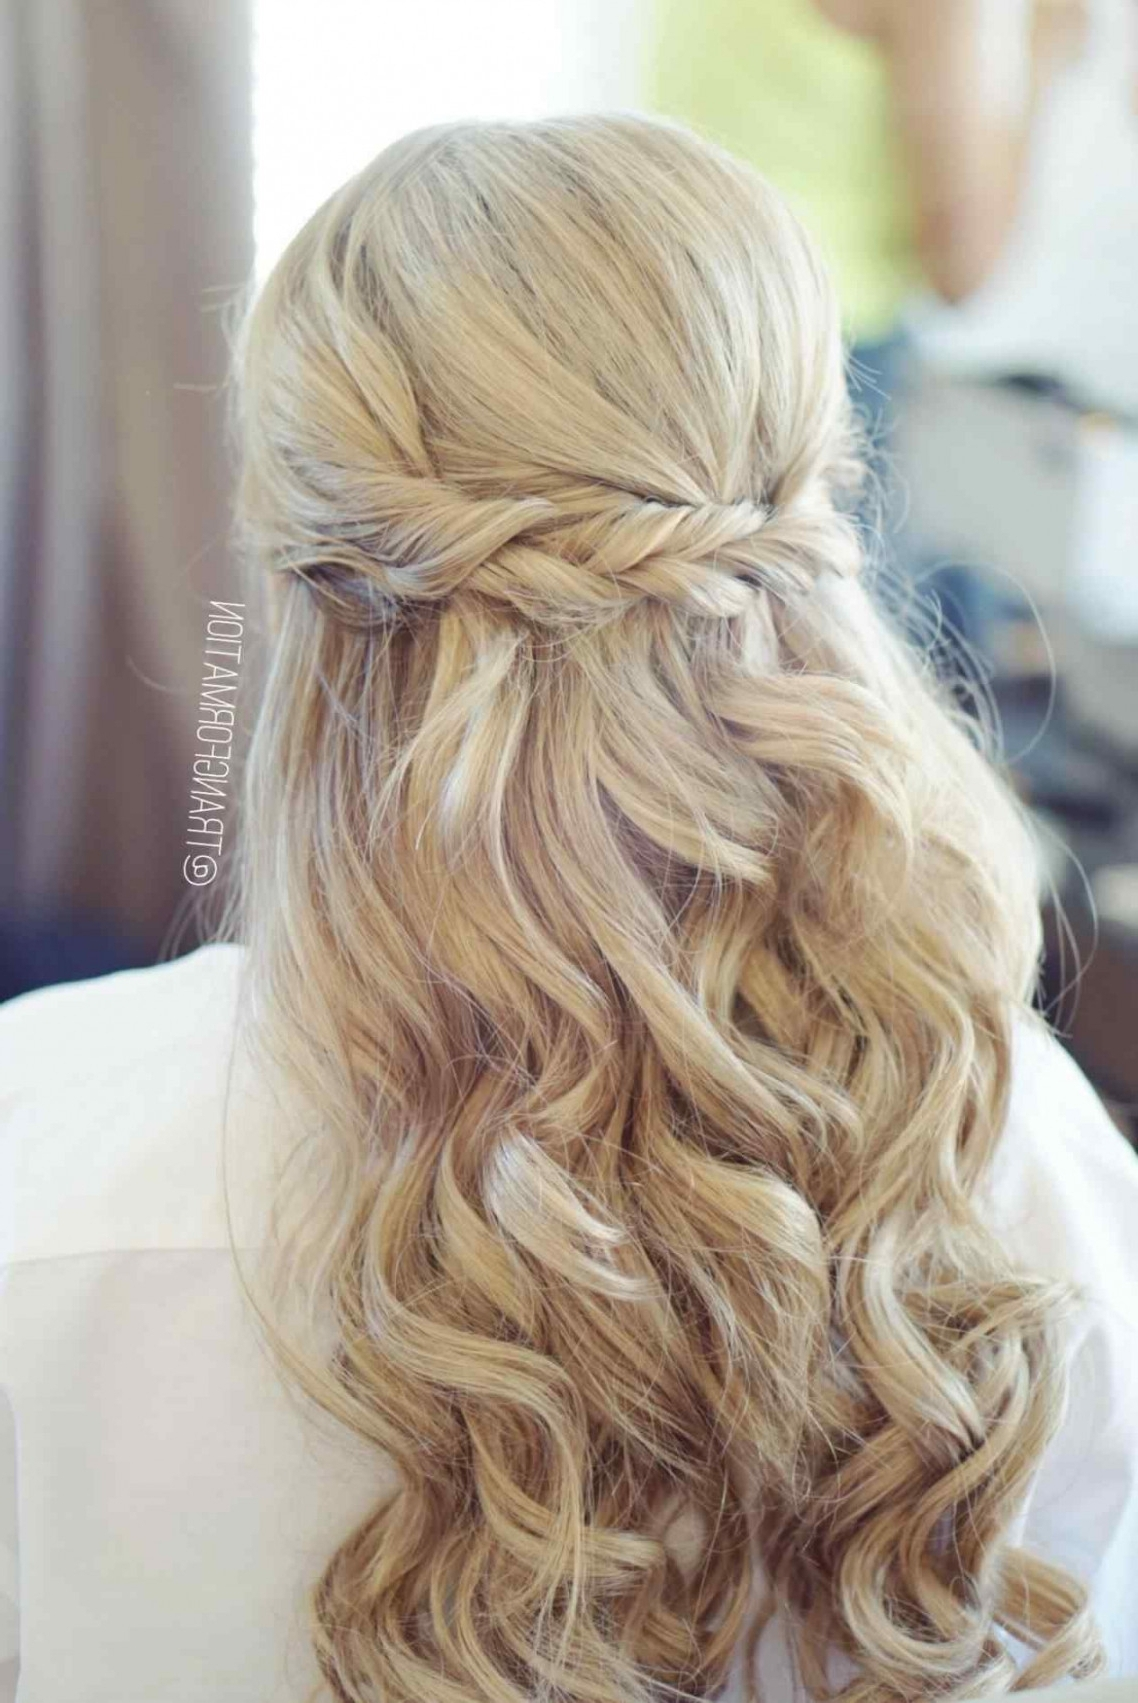 Photo Gallery Of Half Updo Hairstyles Viewing 11 Of 15 Photos